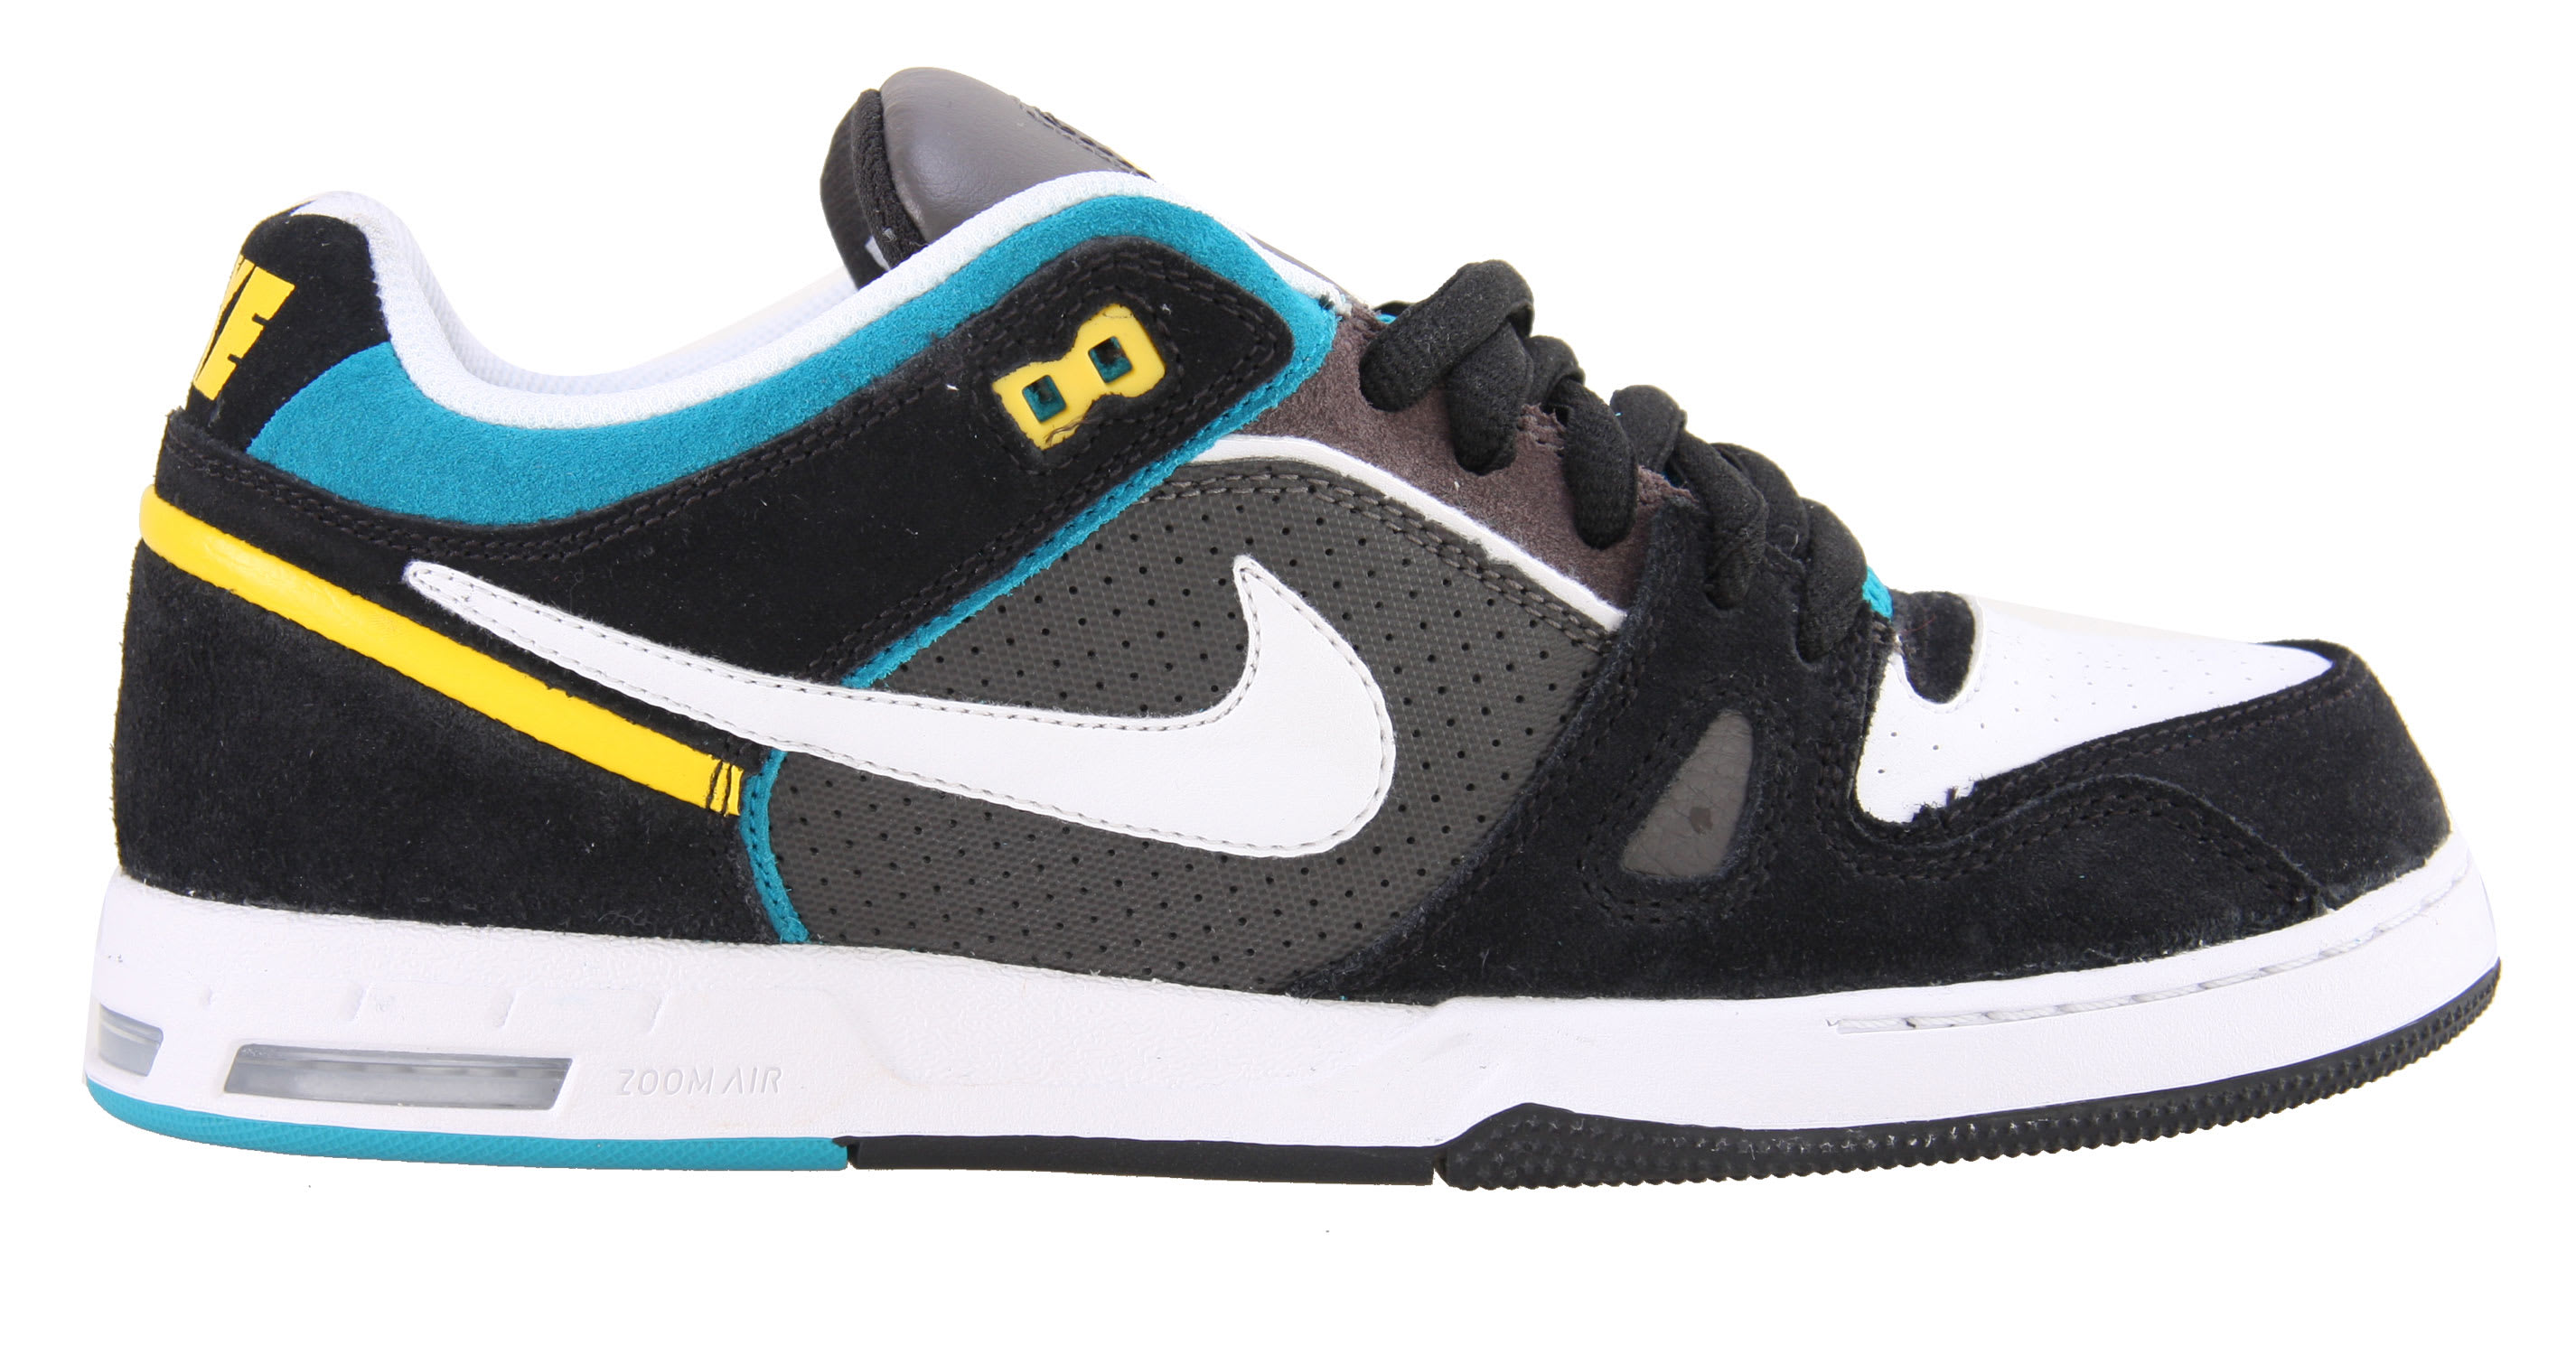 0a14c9677 Nike Zoom Oncore 2 Skate Shoes - thumbnail 1